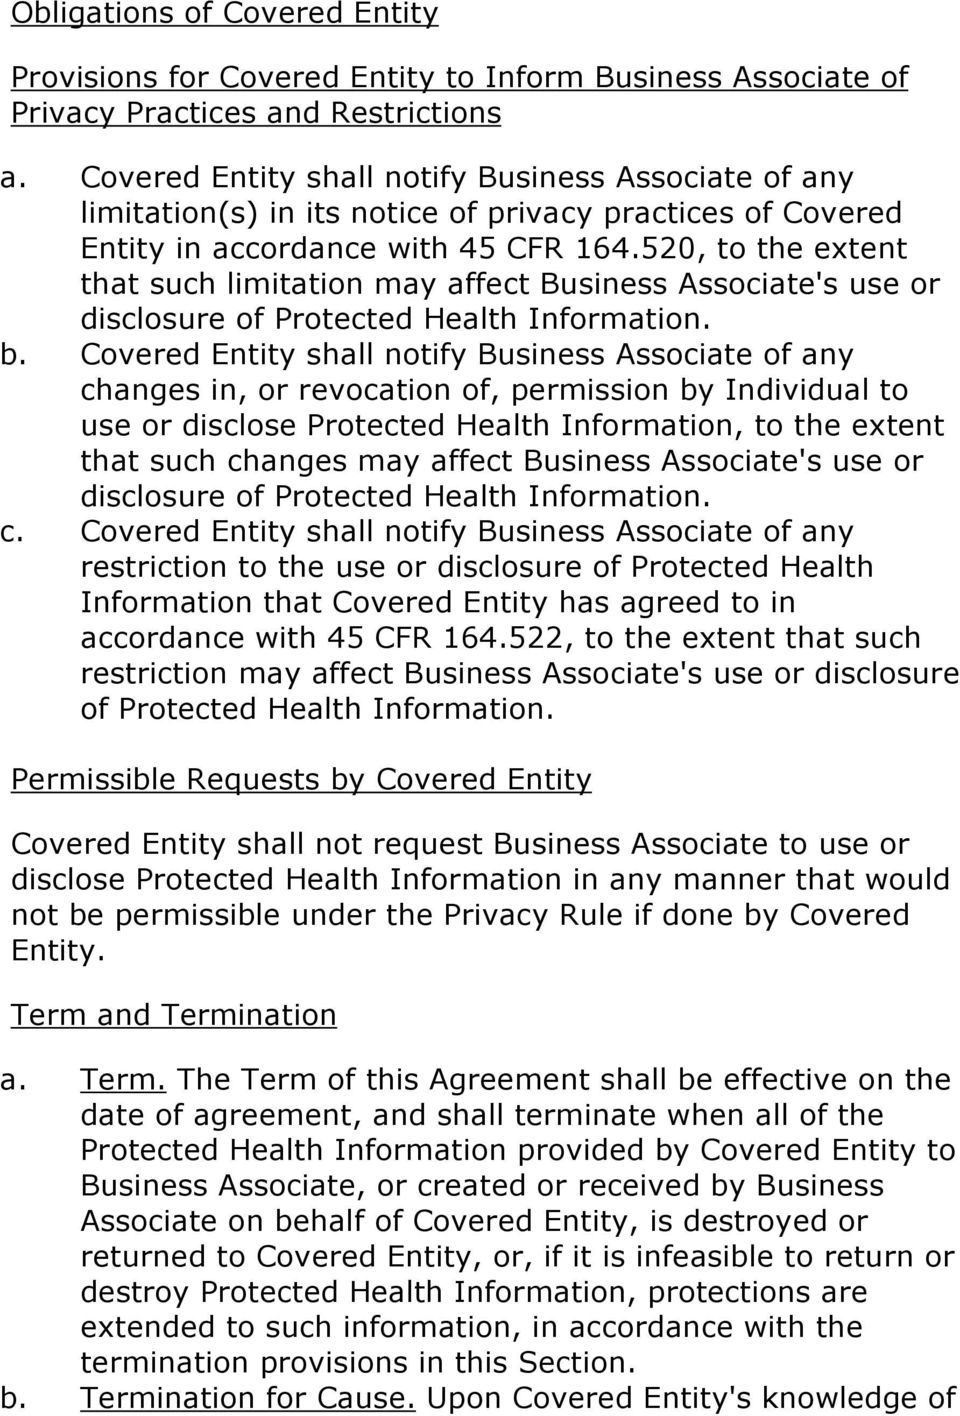 520, to the extent that such limitation may affect Business Associate's use or disclosure of Protected Health Information. b.